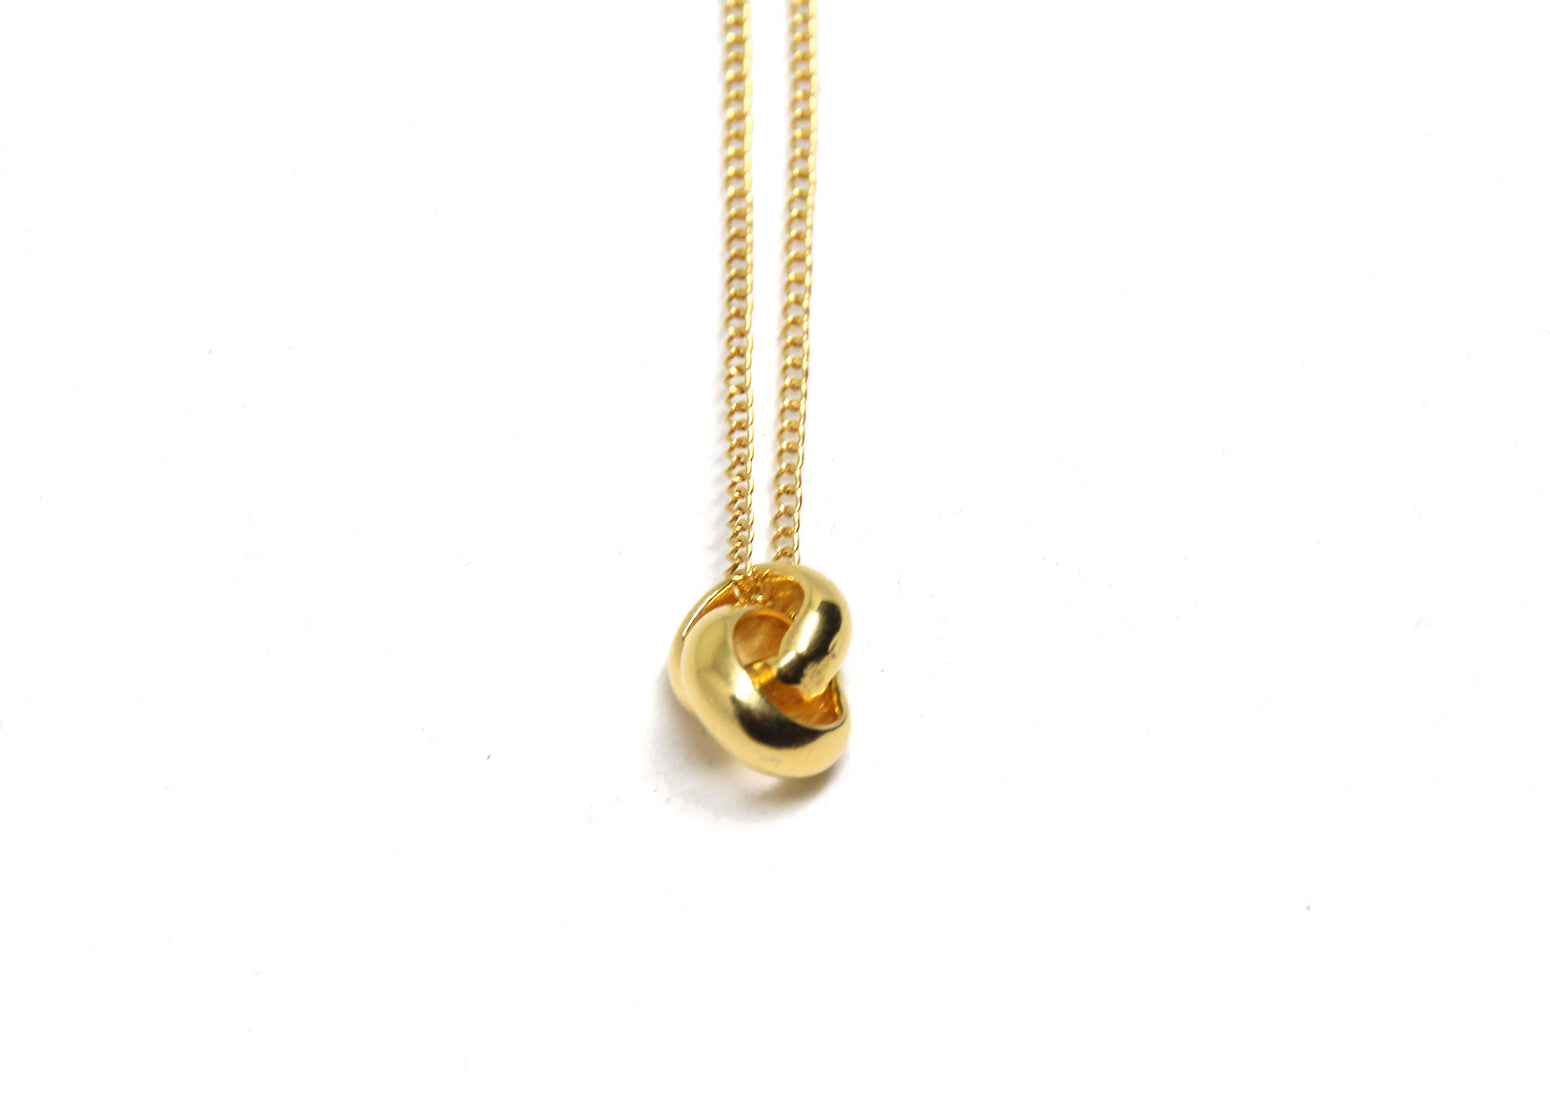 llayers jewelry Infinity gold pendant with interlaced rings minimal collier avec anneaux entrelacés en plaqué or